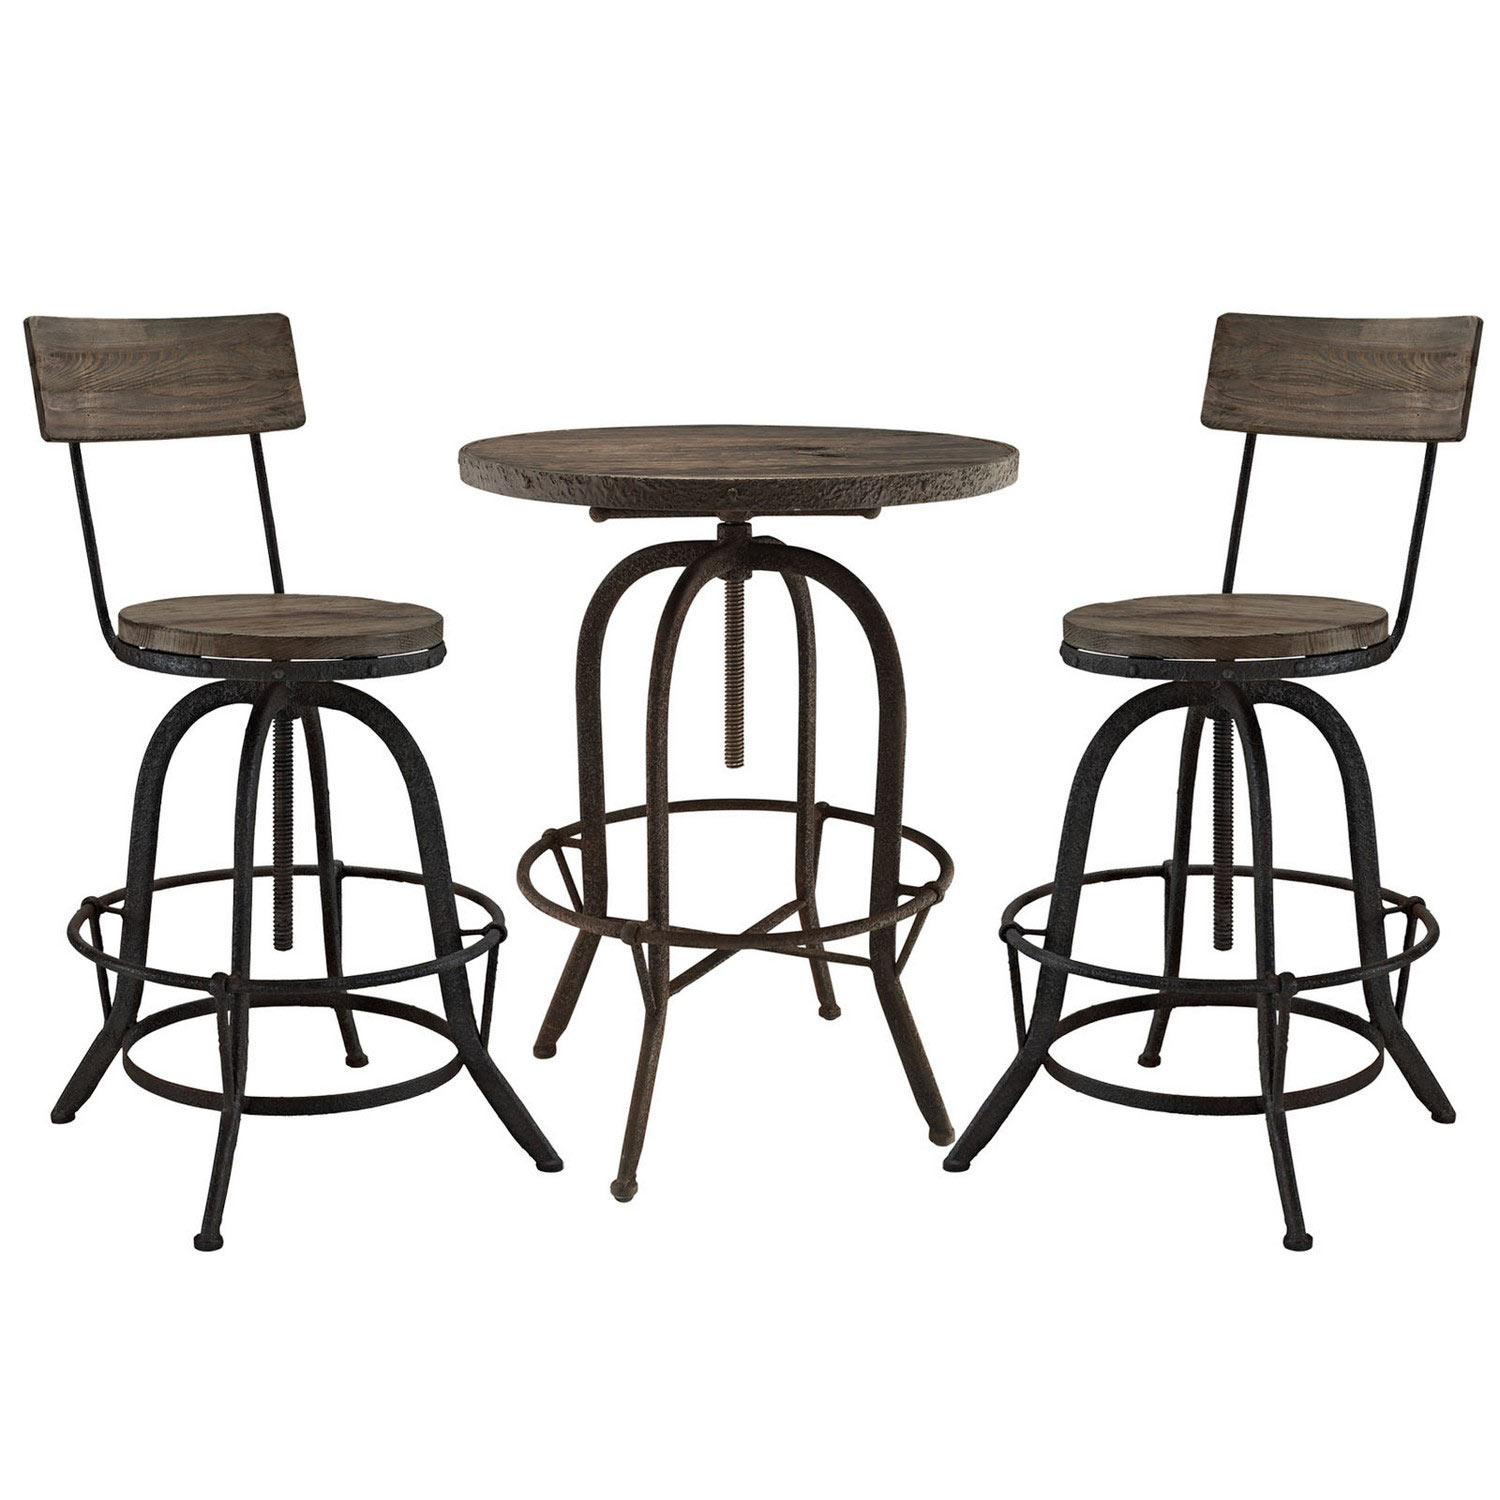 Modway Gather 3 Piece Dining Set - Brown